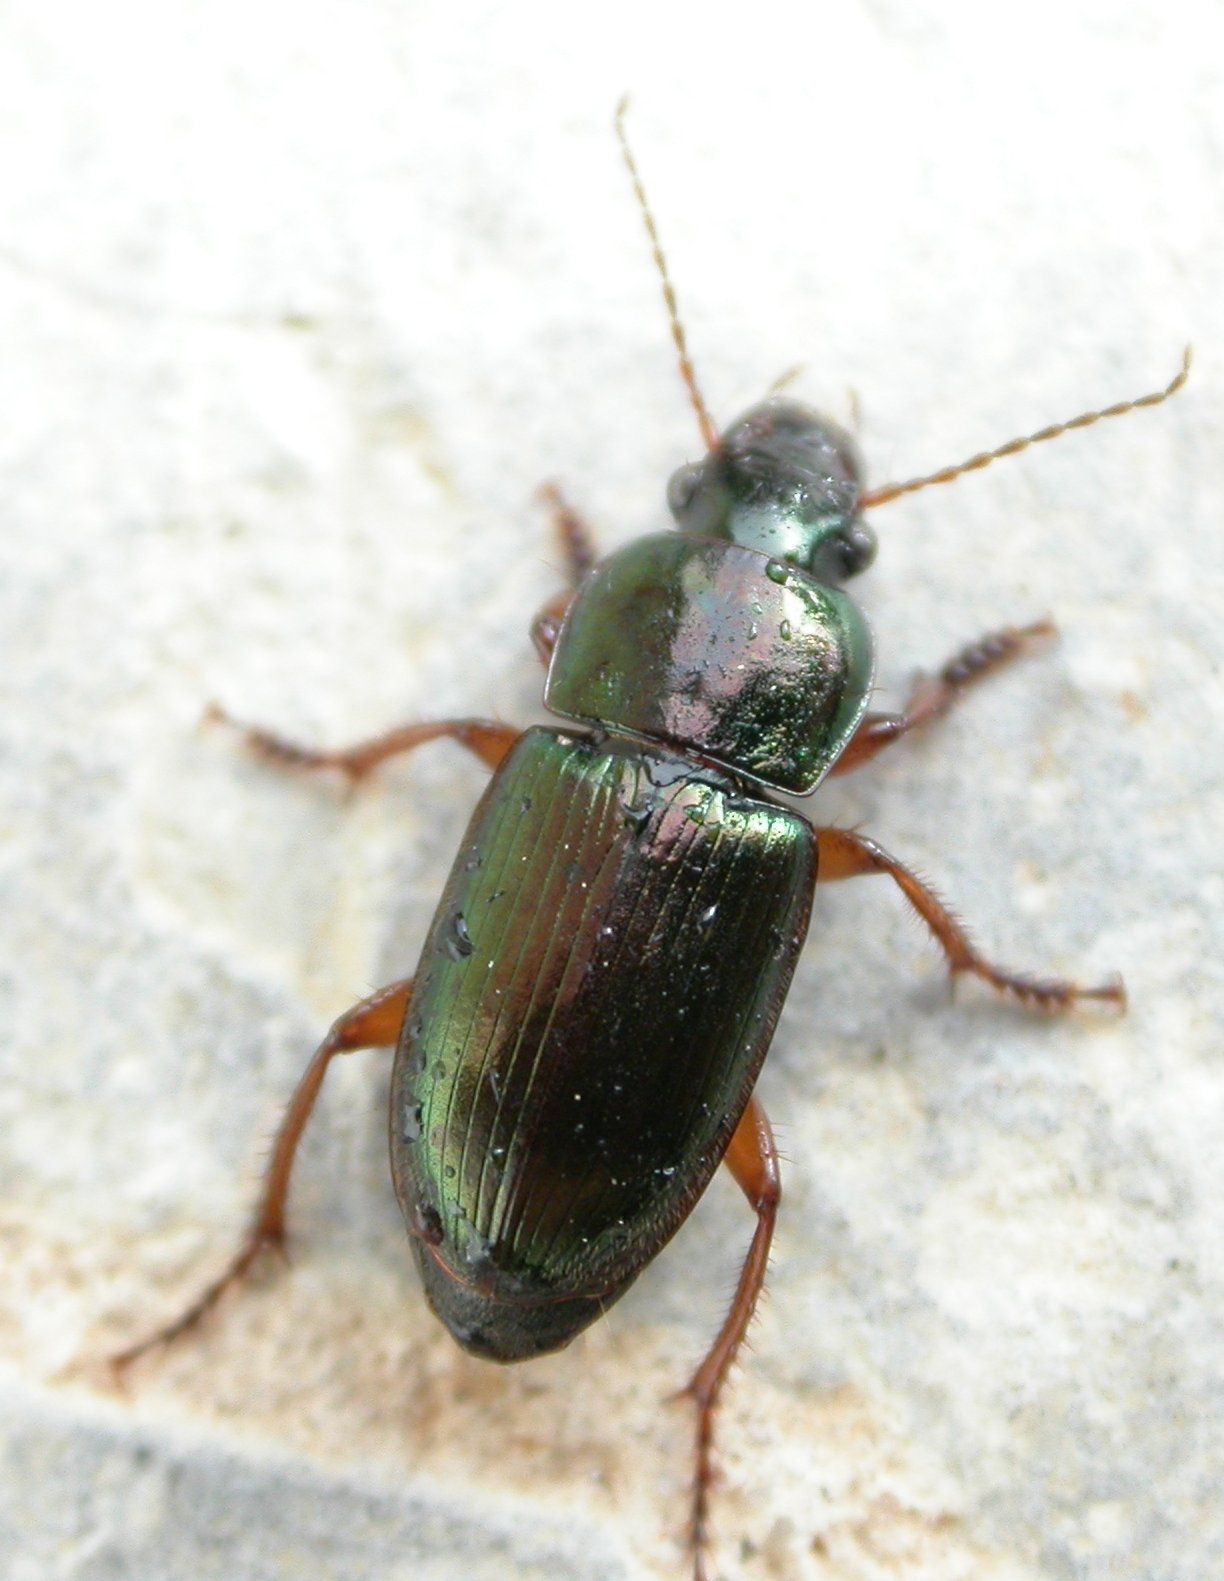 Harpalus affinis is a Carabidae. ©  Olivier, insecte.org, cc by nc 2.0